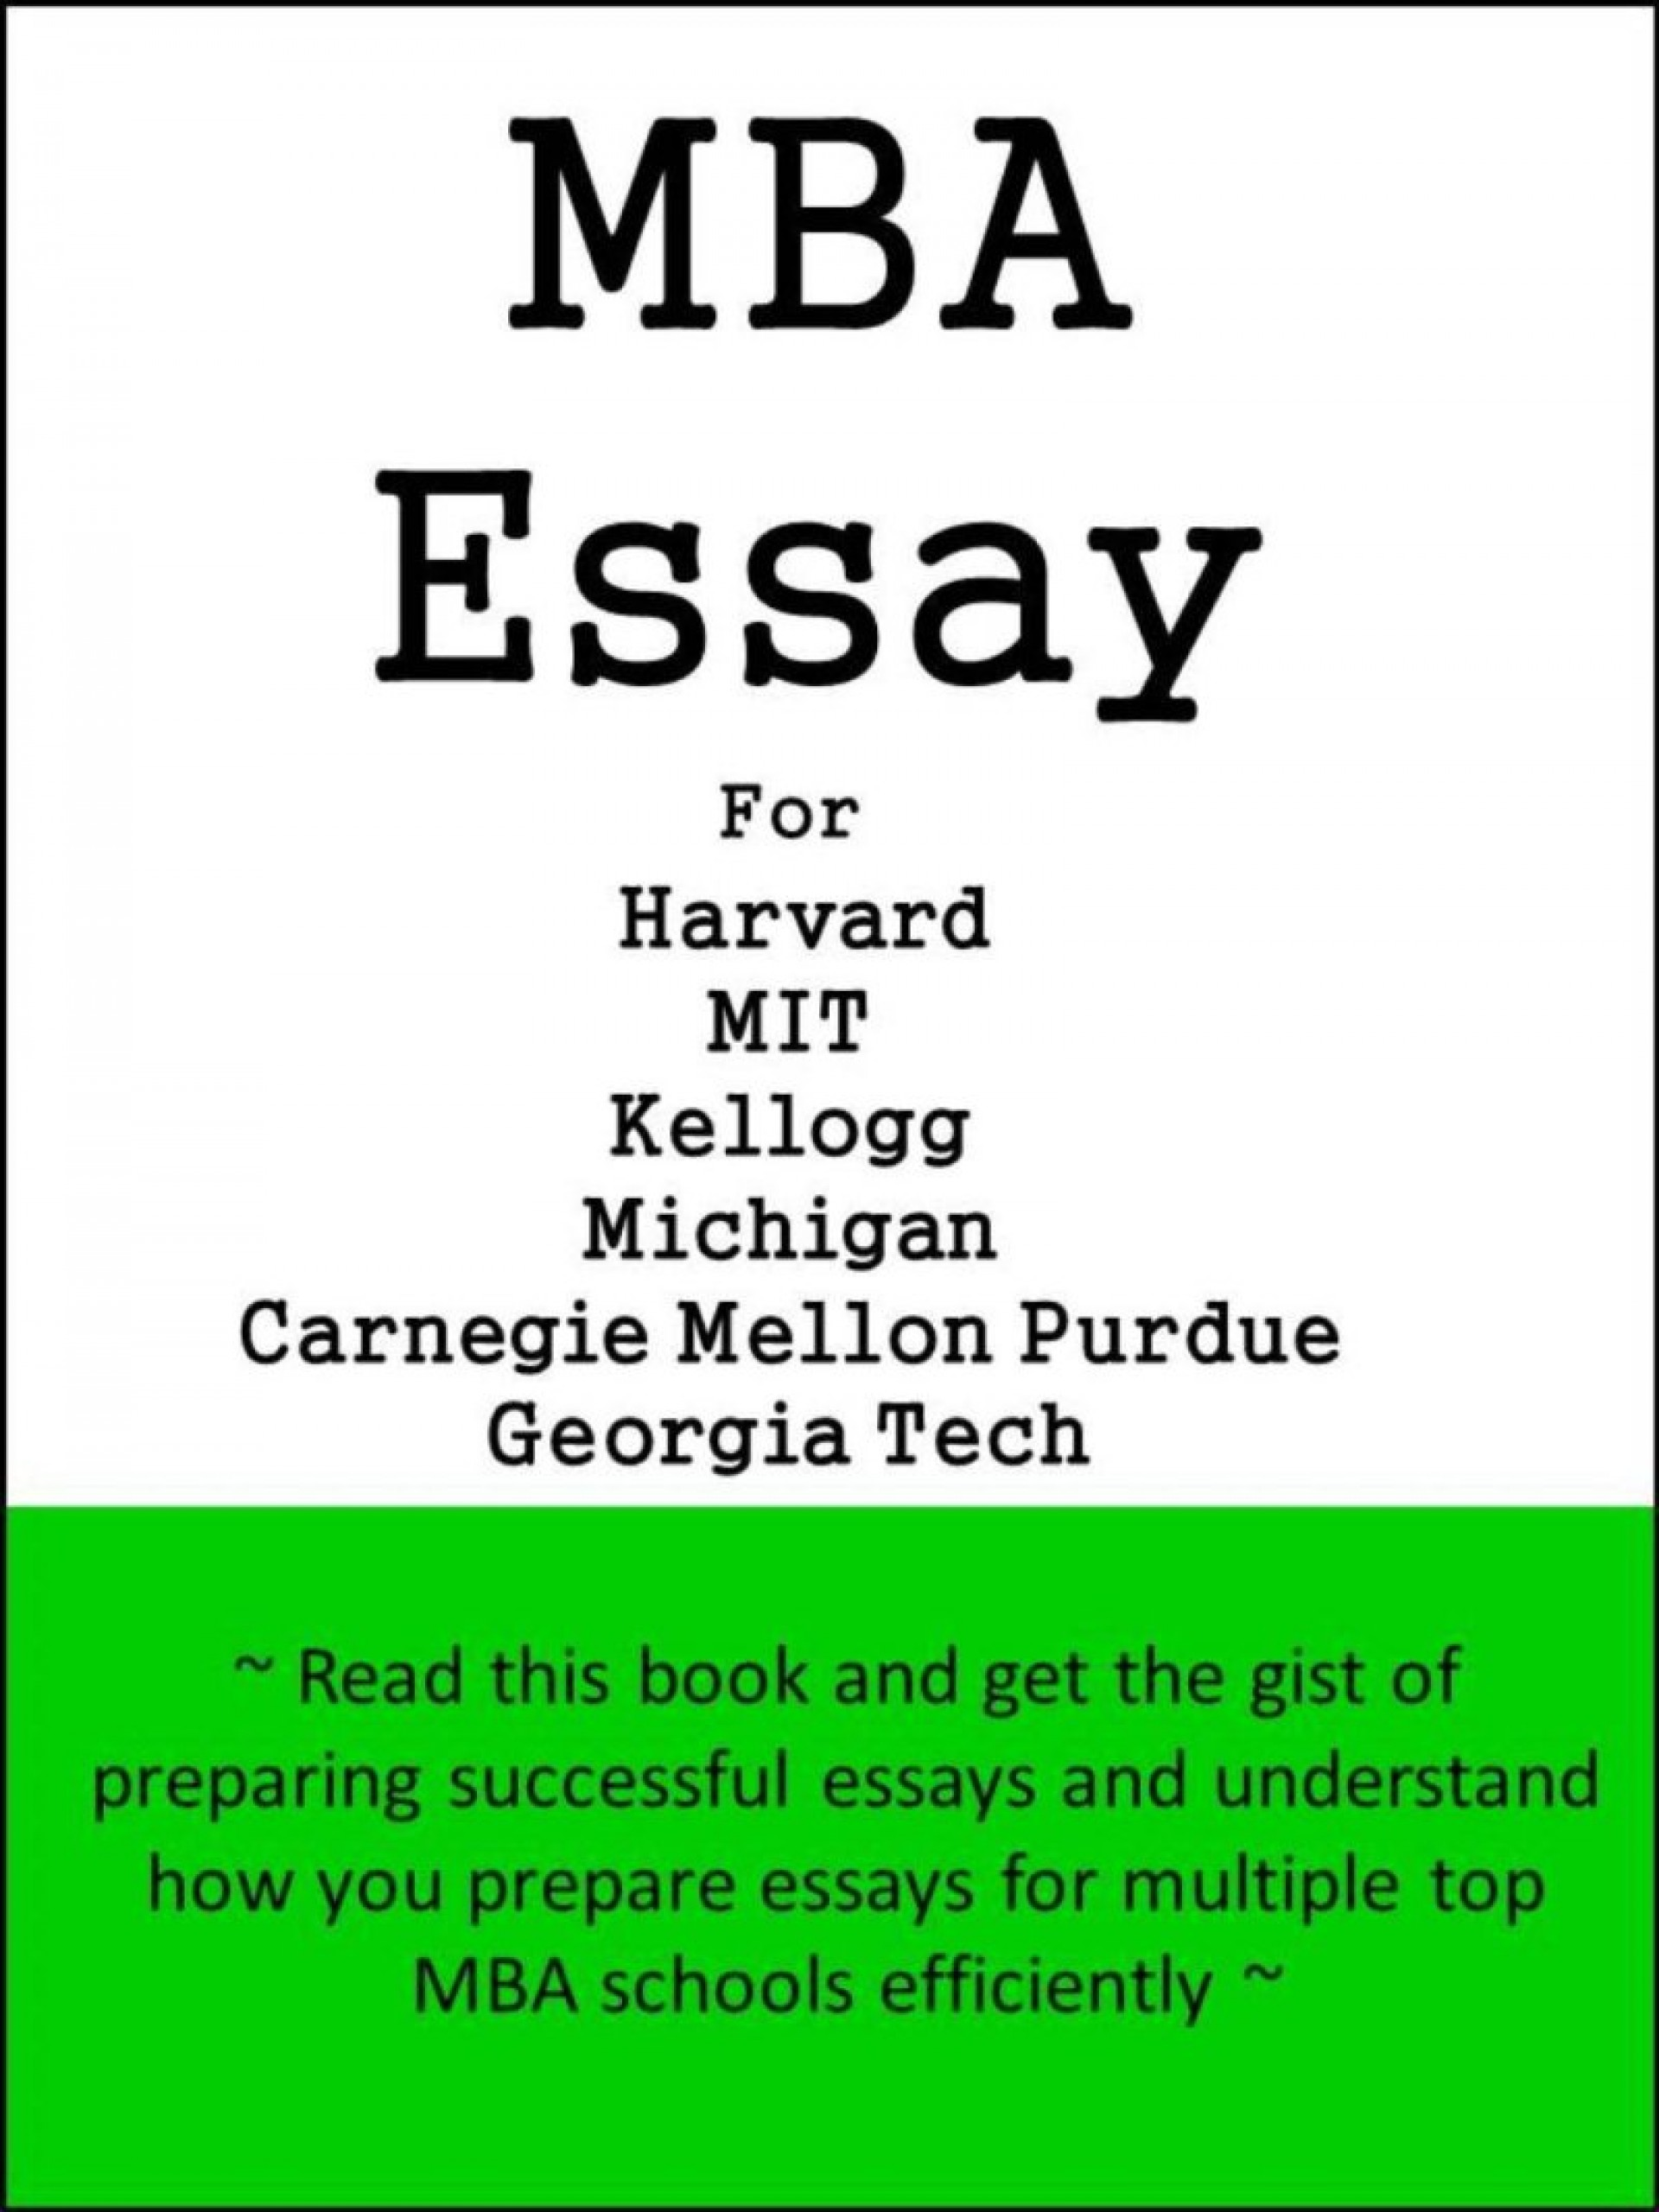 001 Essay Example Carnegie Mellon Kellogg Mba Examples Poemsrom Co For Harvard Mit Michigan Purdue Georgia Tech 205 Striking Sat Requirement Questions 1920